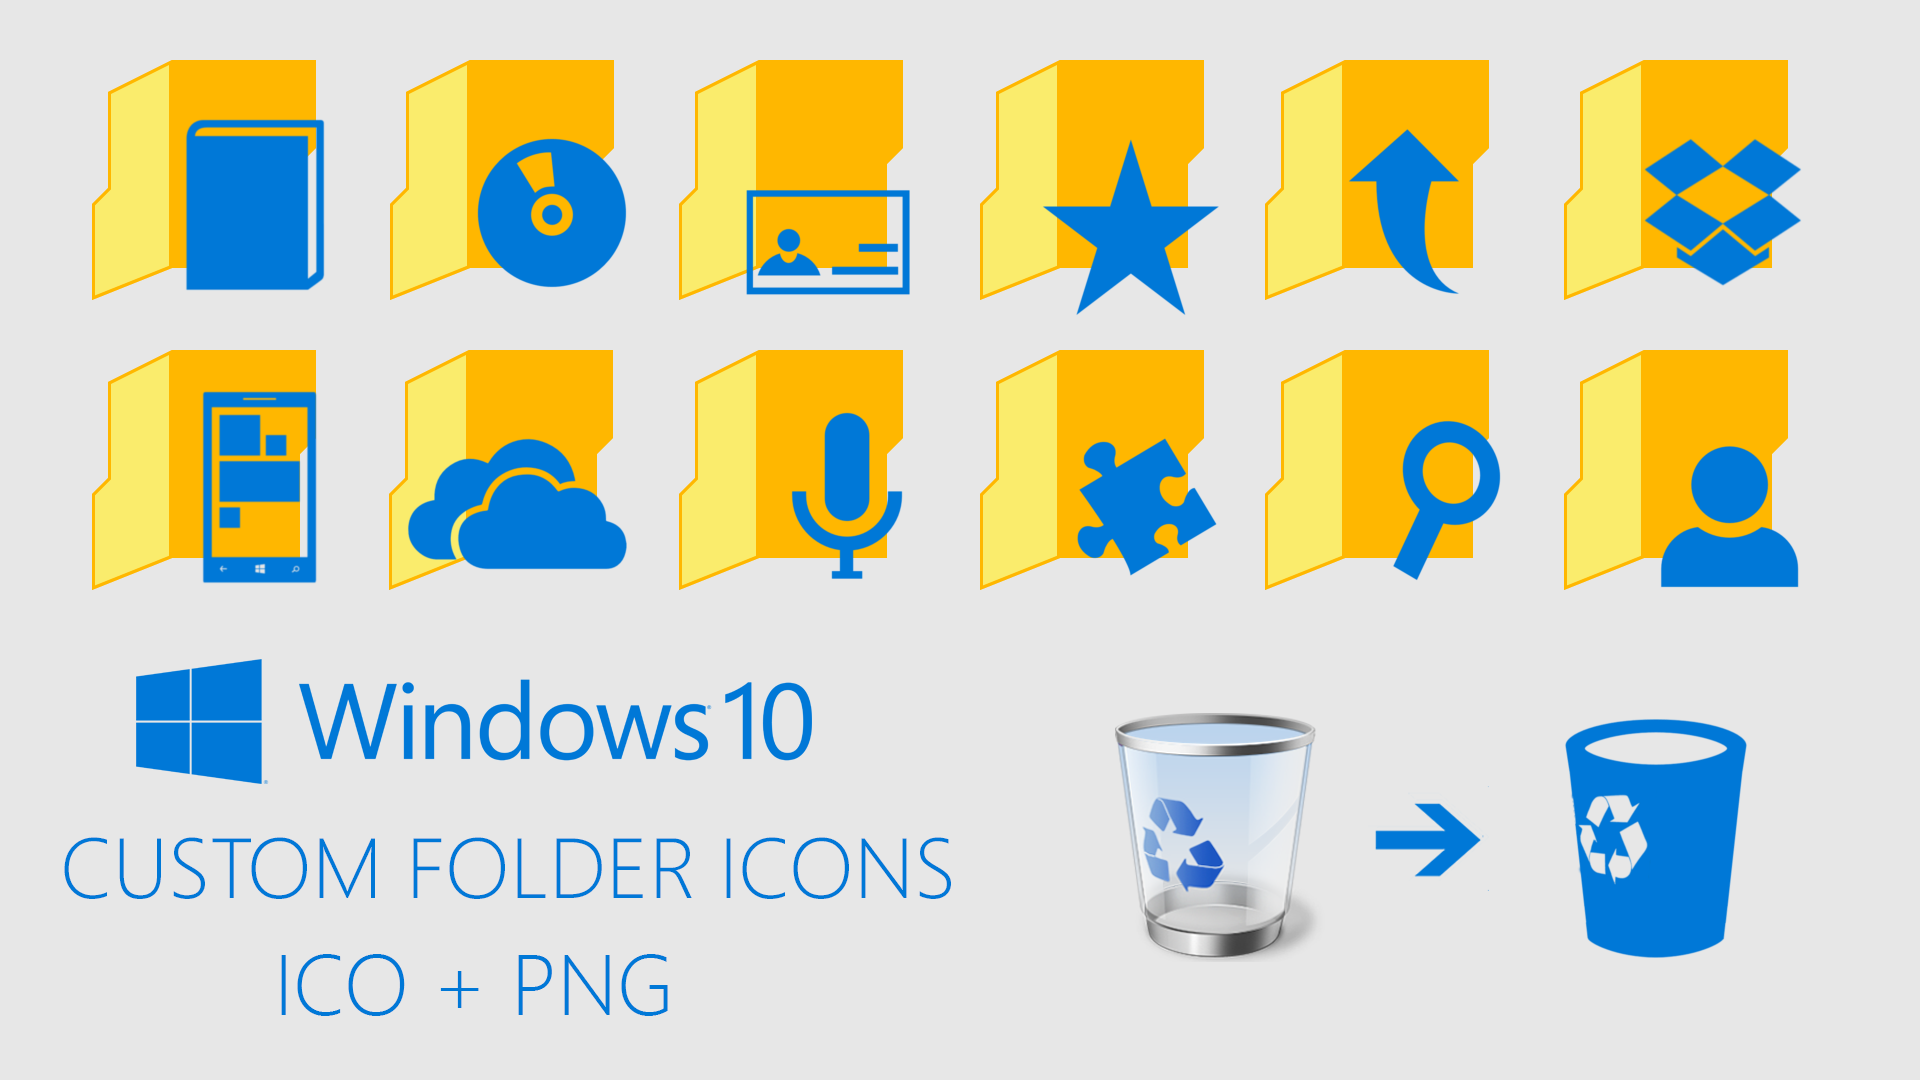 18 Windows Icons Custom Folder Images